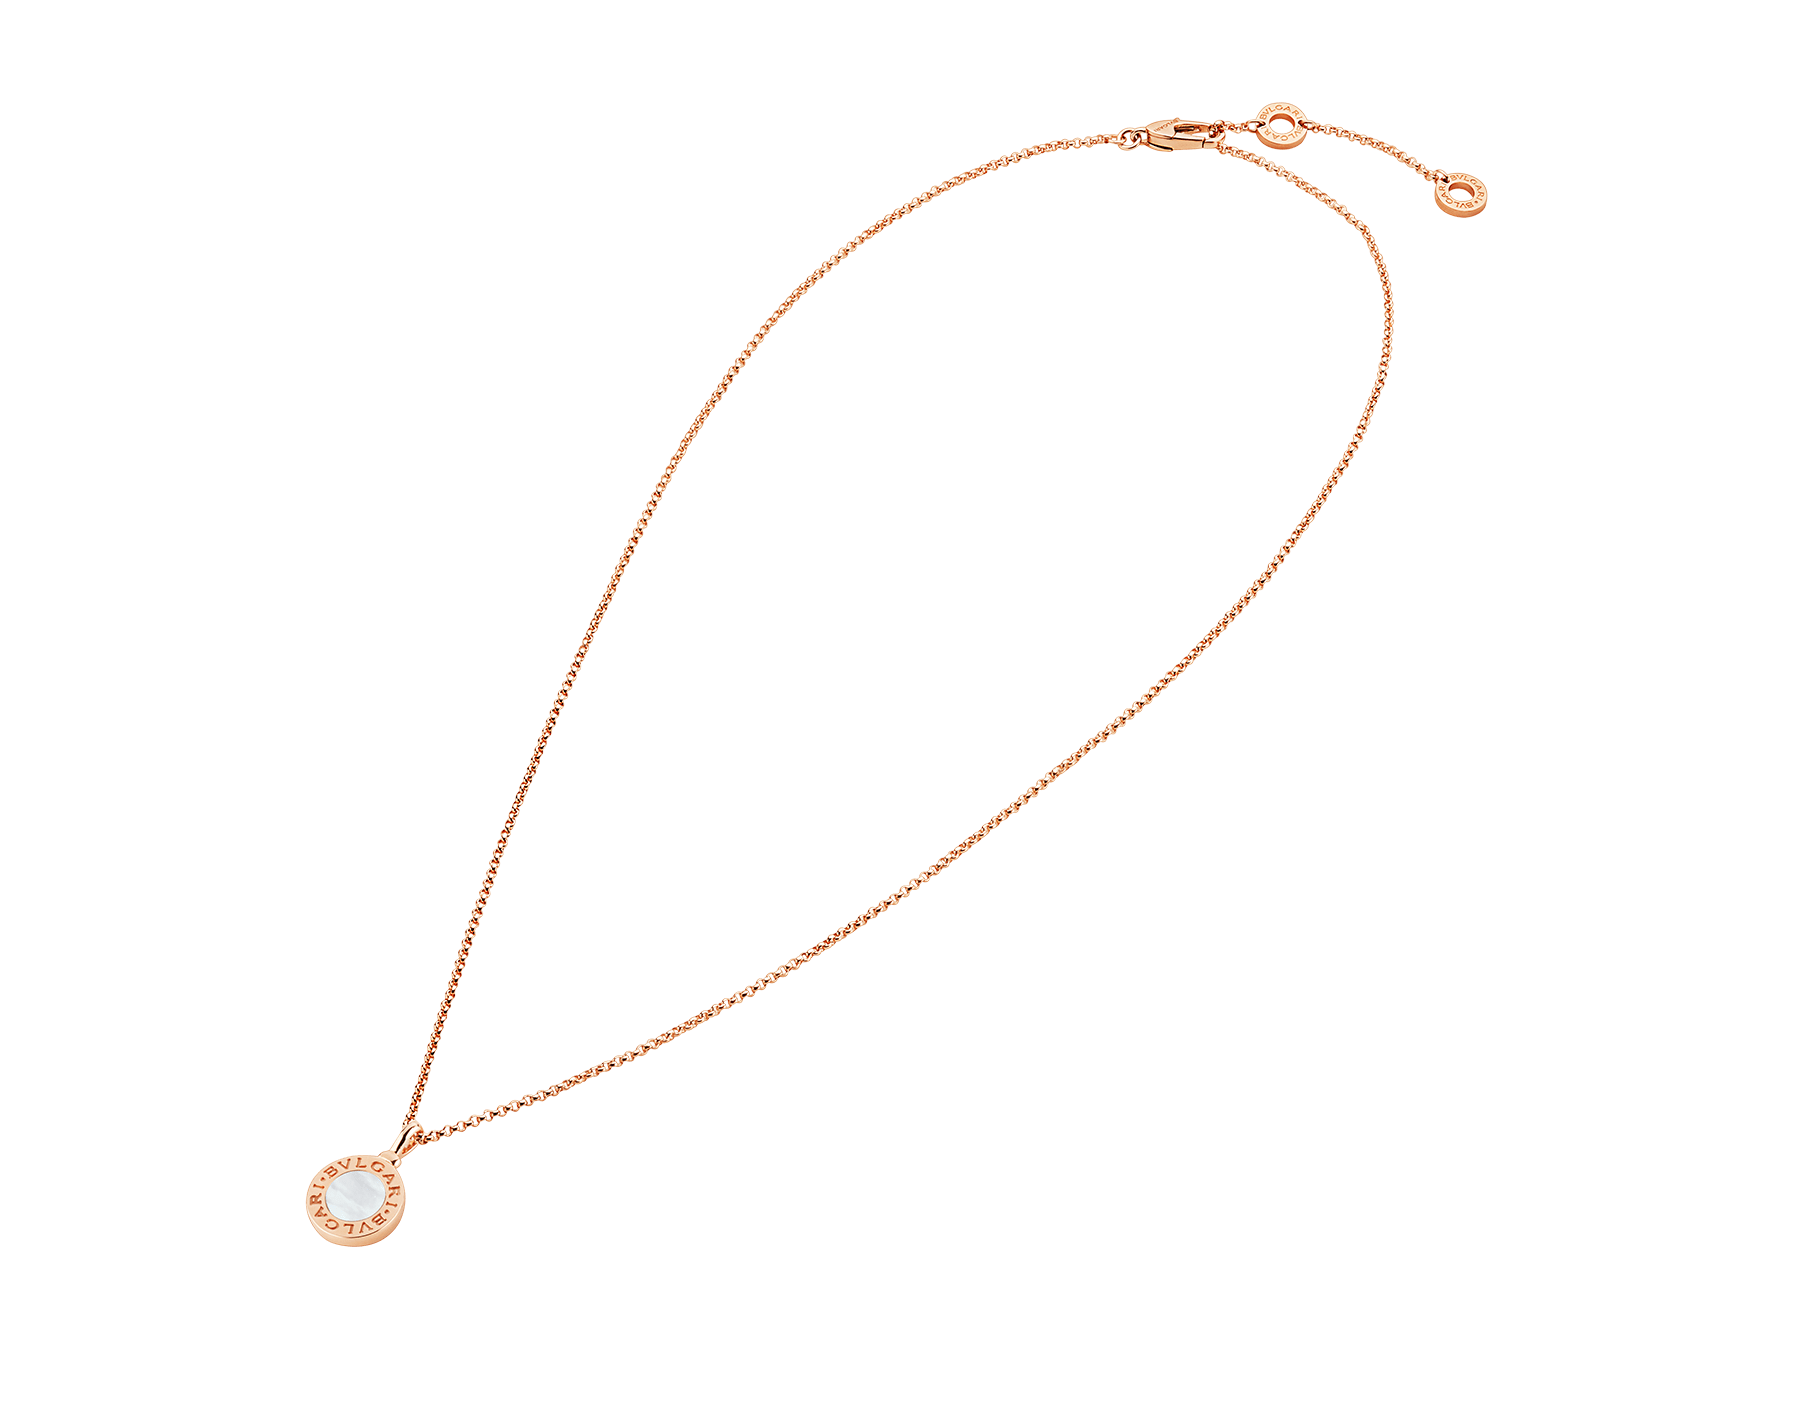 BVLGARI BVLGARI necklace with 18 kt rose gold chain and 18 kt rose gold pendant set with mother-of-pearl elements 350553 image 2